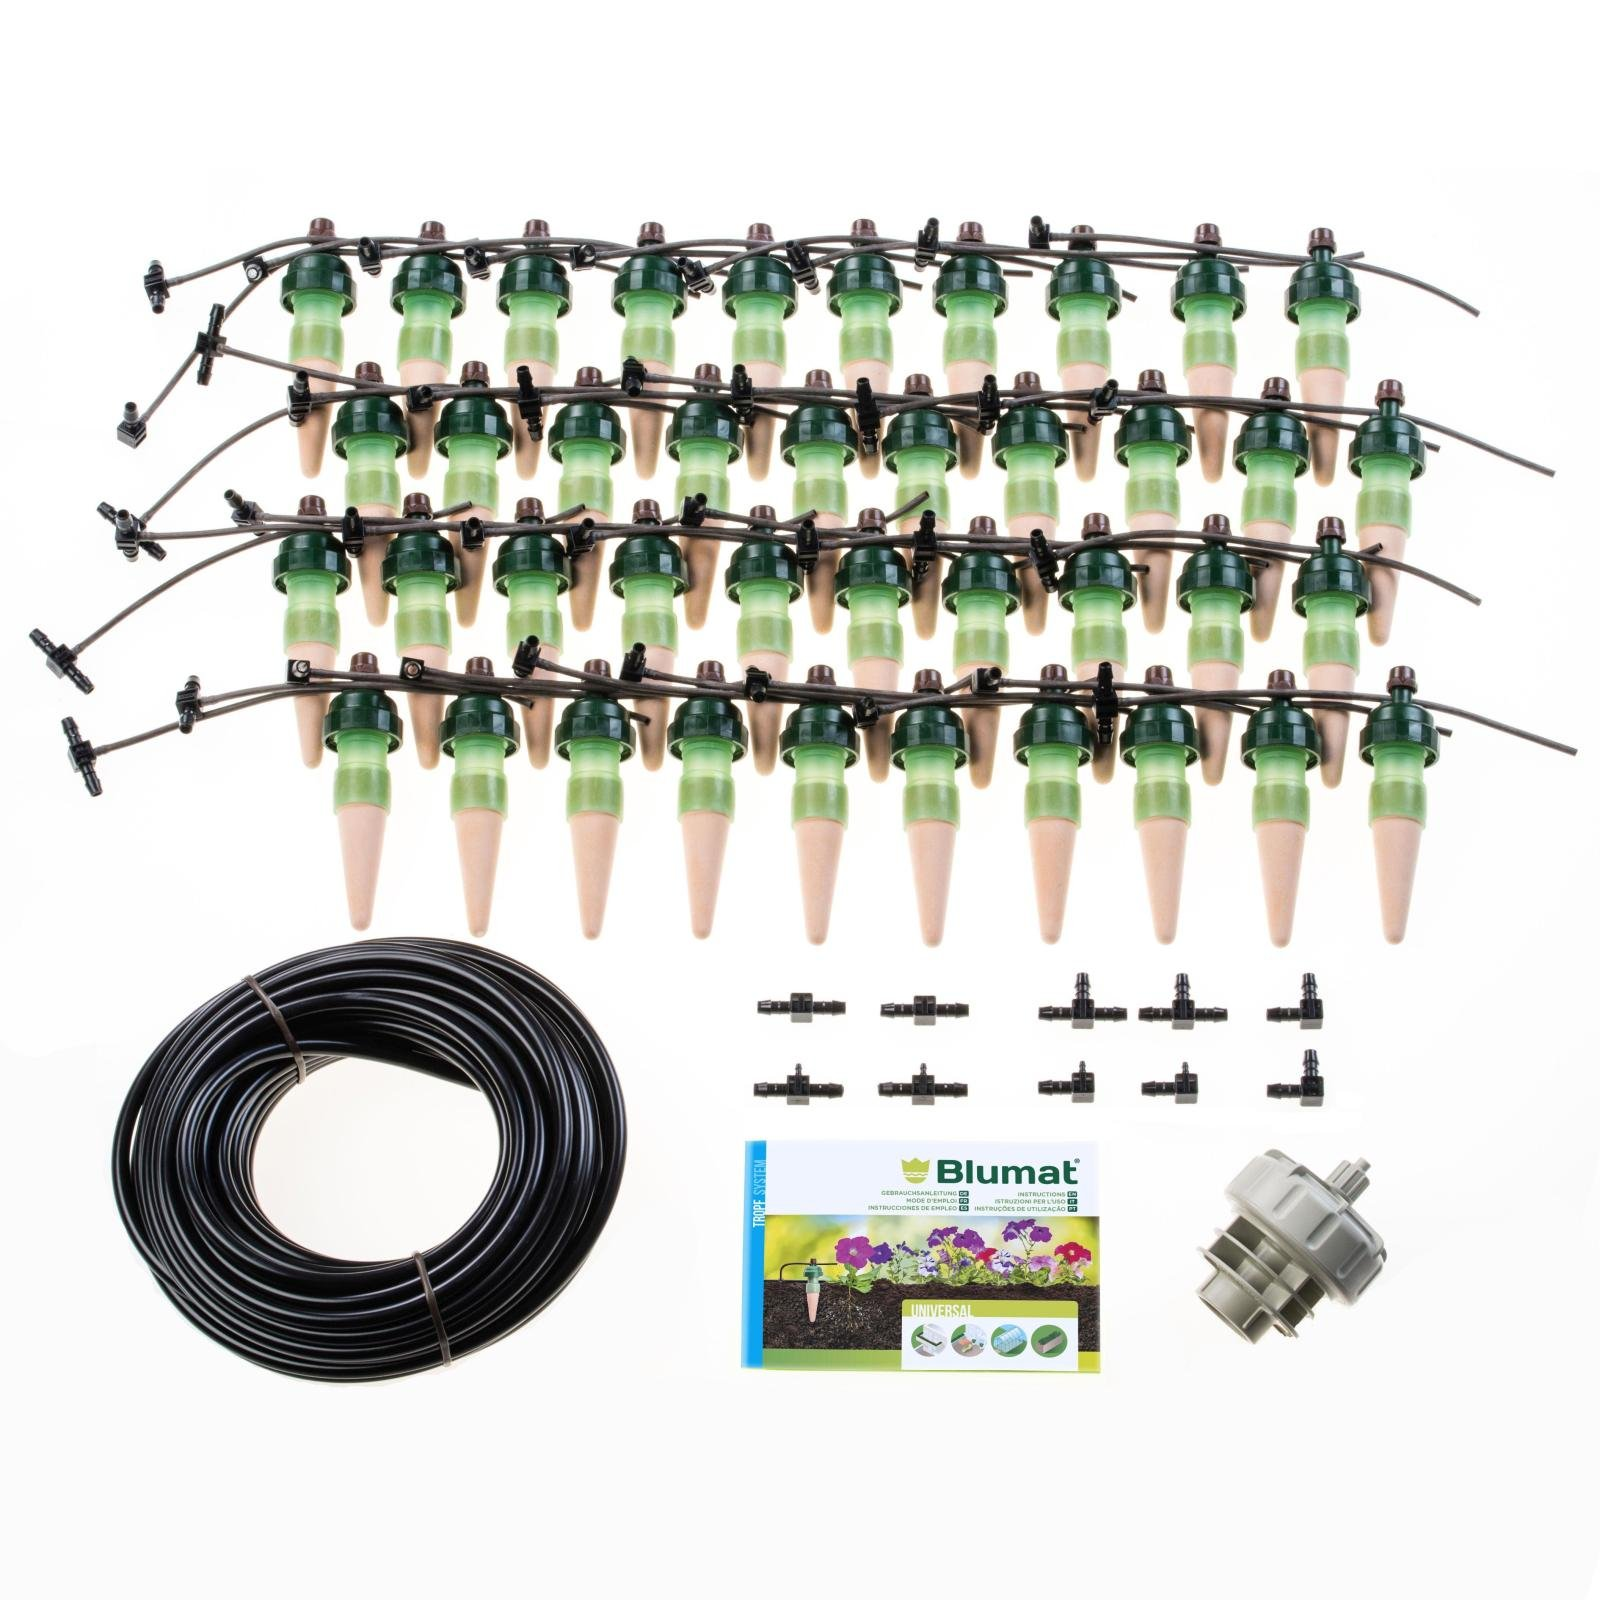 Blumat Pressure XL Box Kit - Automatic Irrigation for Up To 40 Plants by Blumat